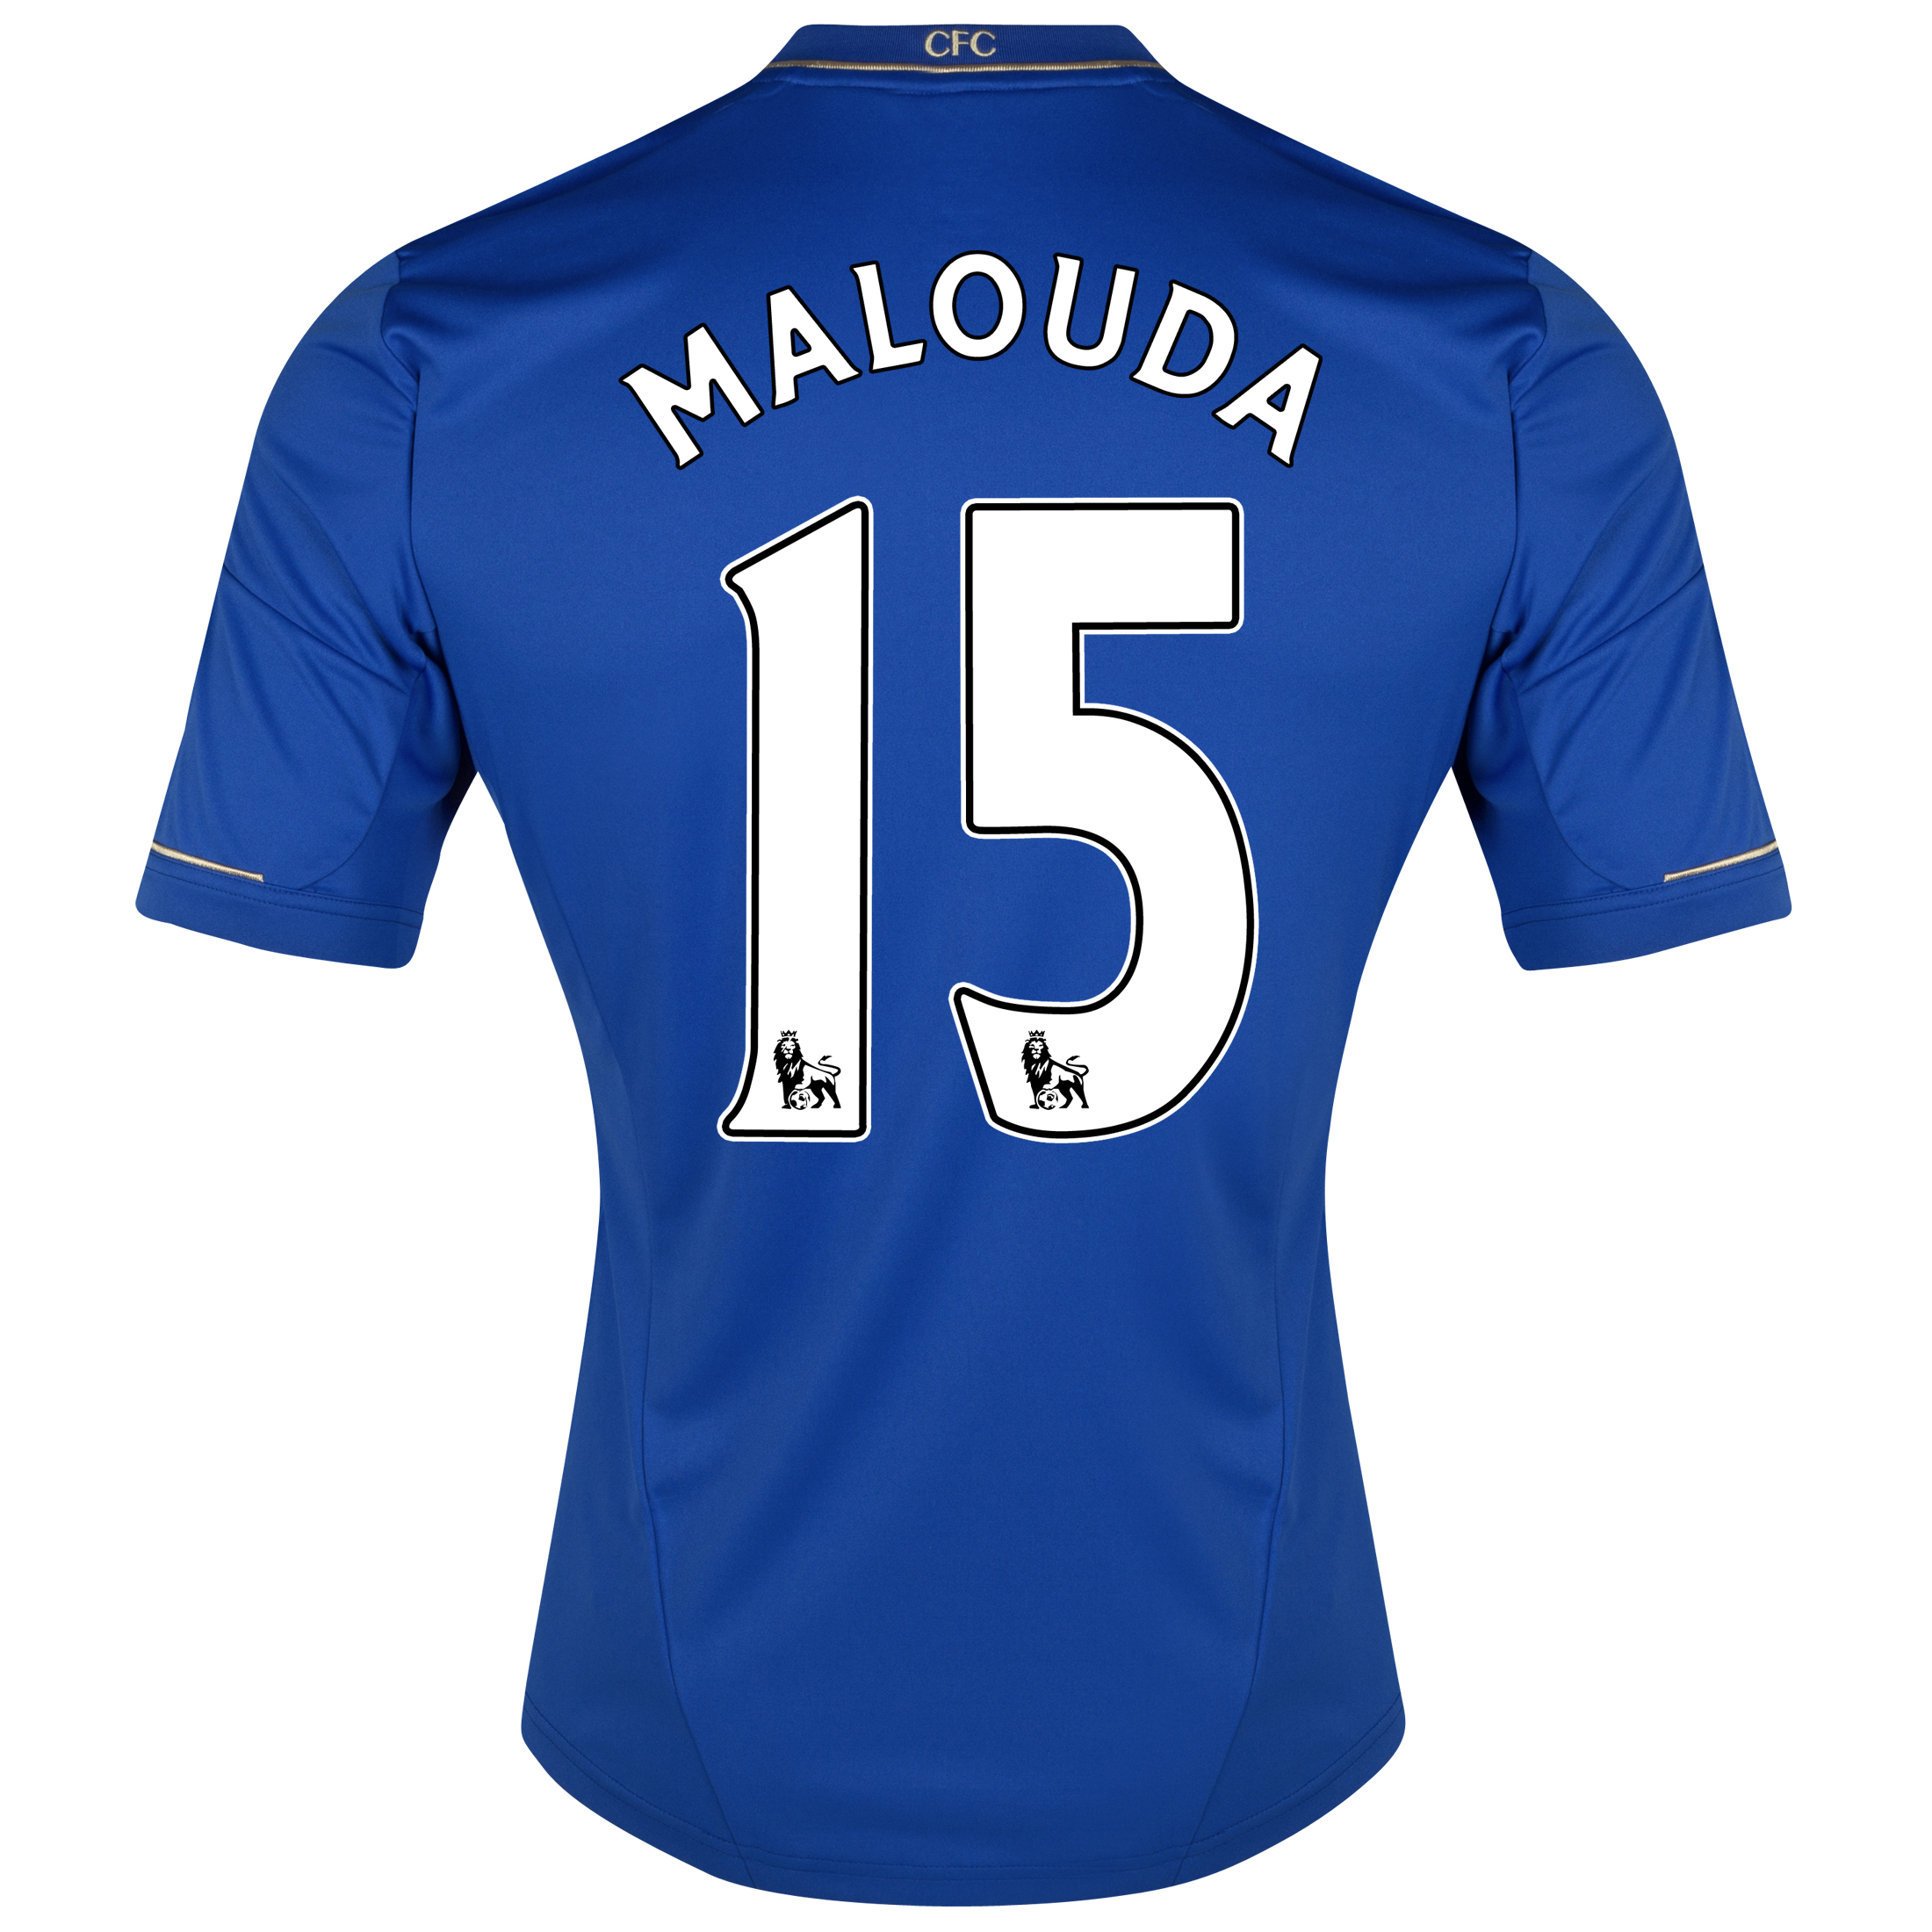 Chelsea Home Shirt 2012/13 - Youths with Malouda 15 printing